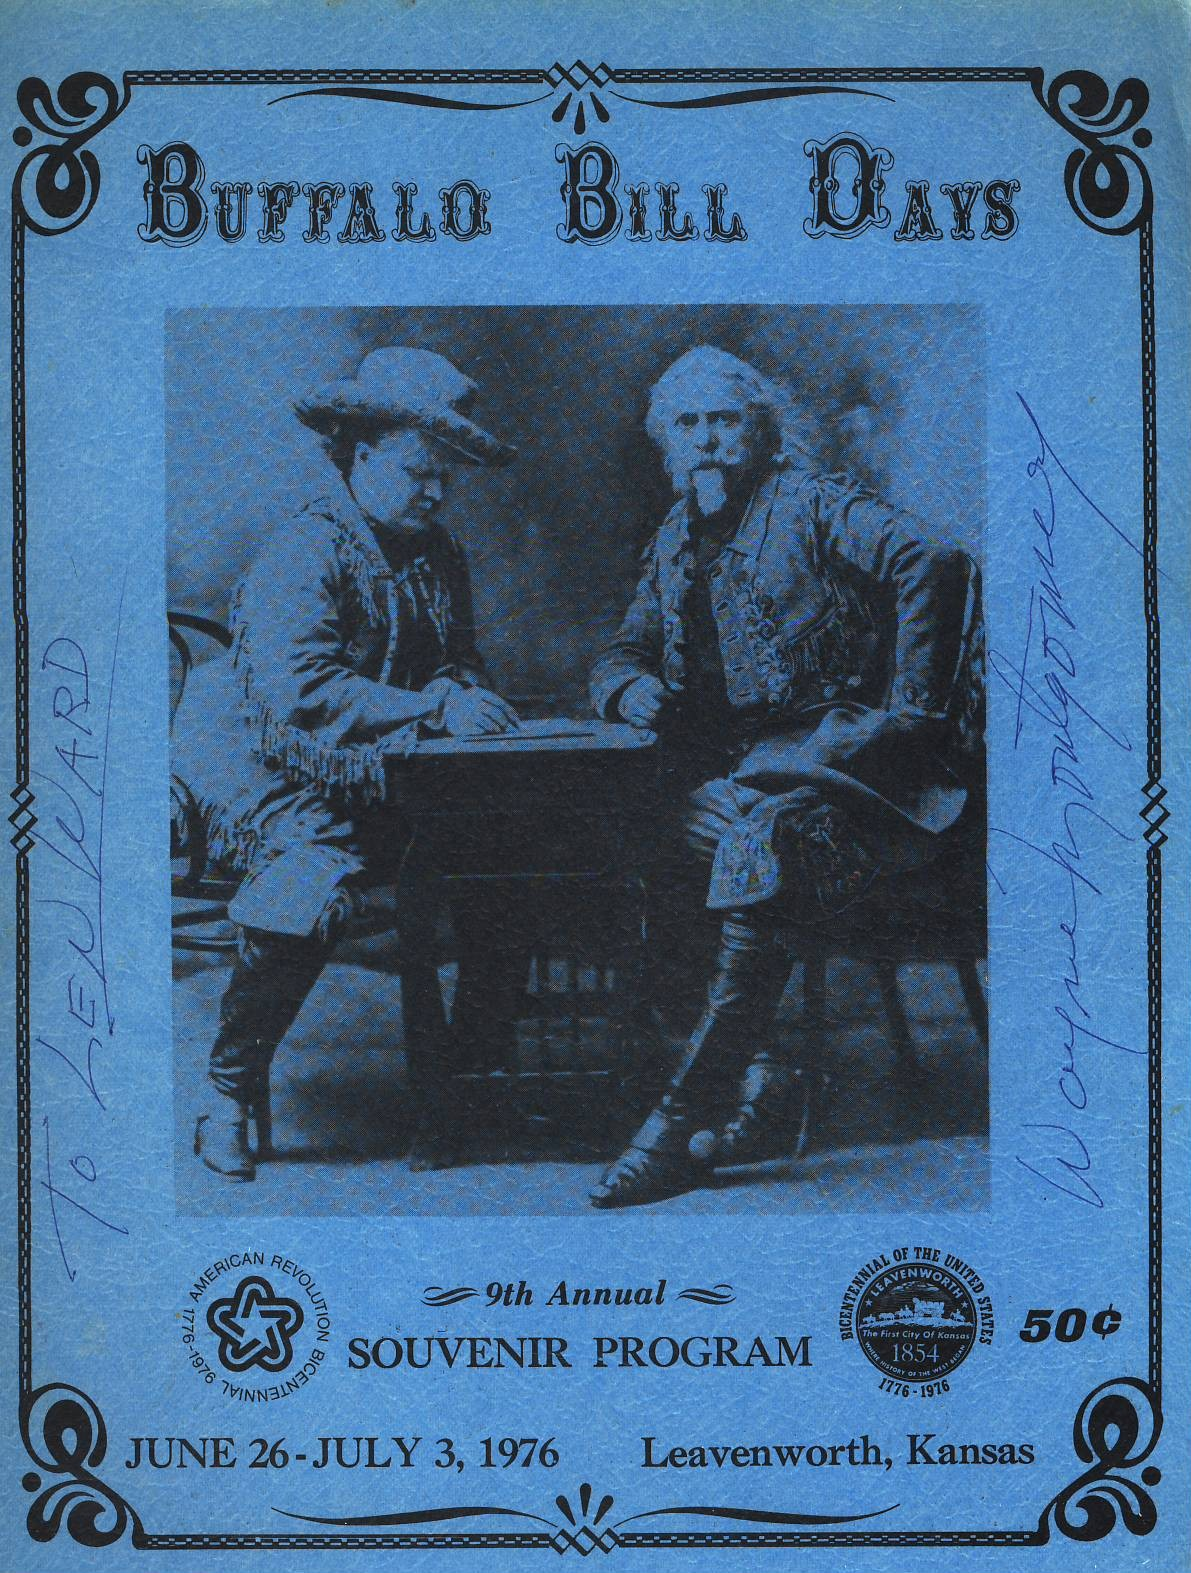 1976 Bicentennial Year Leavenworth Kansas 32 pages vintage programme featuring the story of William F. Cody (Buffalo Bill). Signed Wayne Montgomery to Len Ward. Approx 21cm x 28cm. Local adverts. Please see photo and FULL DESCRIPTION